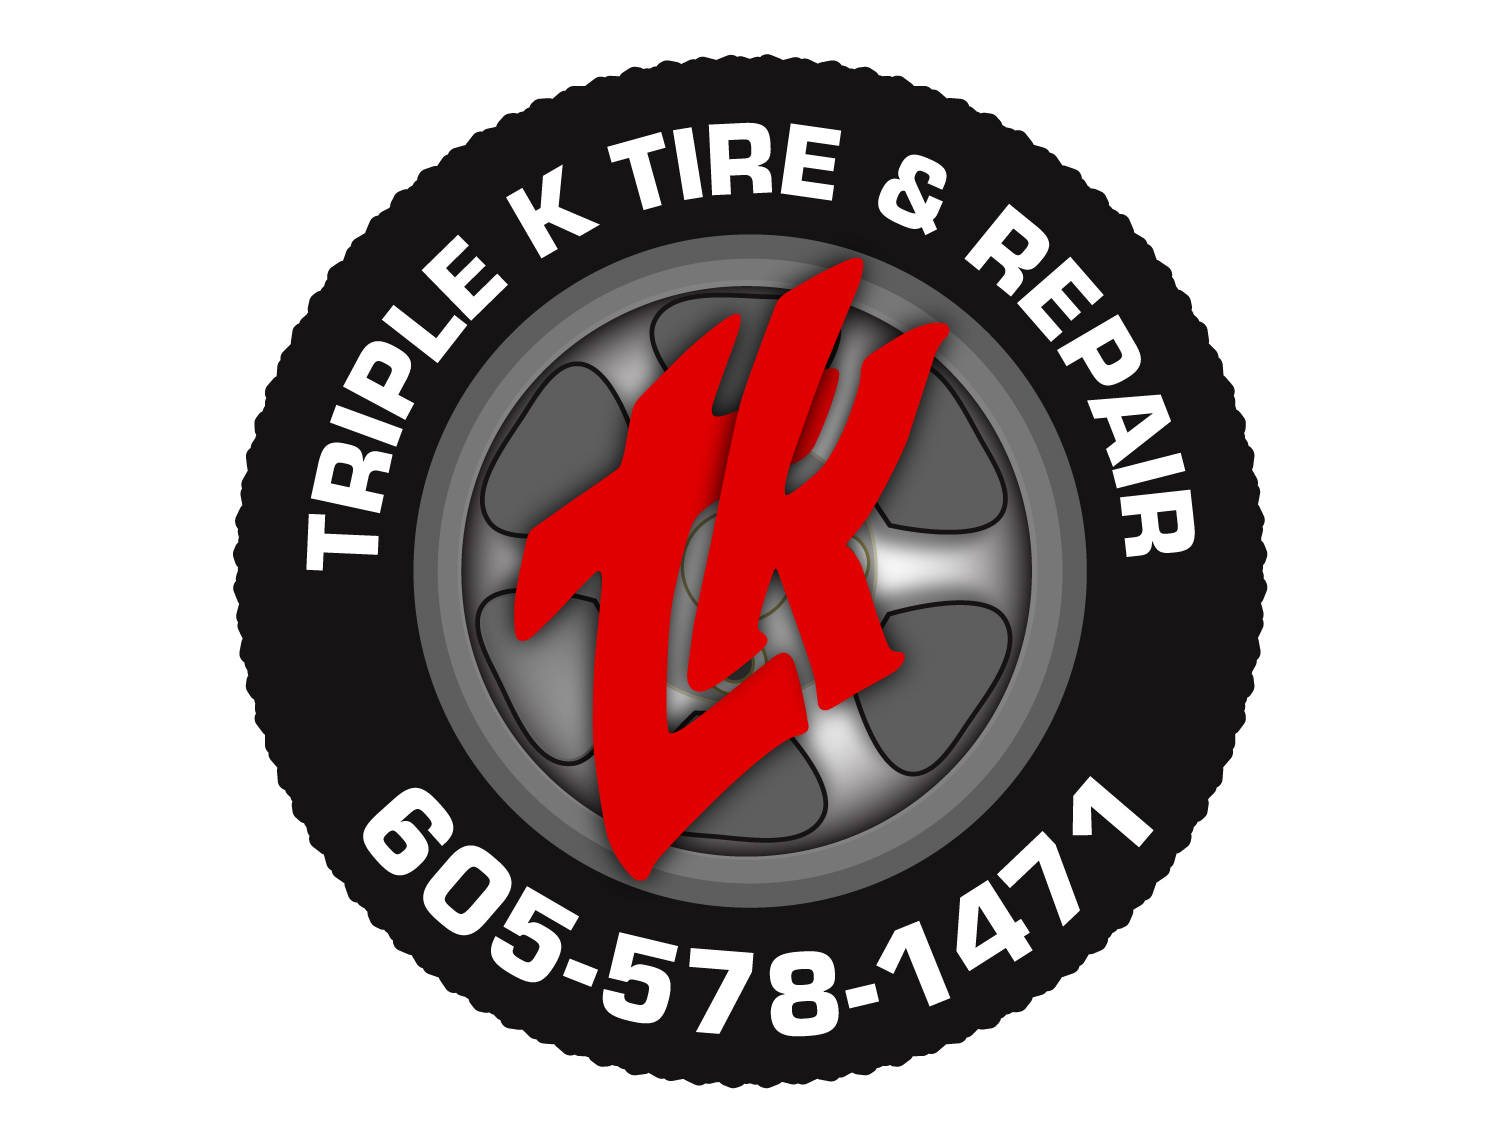 Triple K Tire & Repair